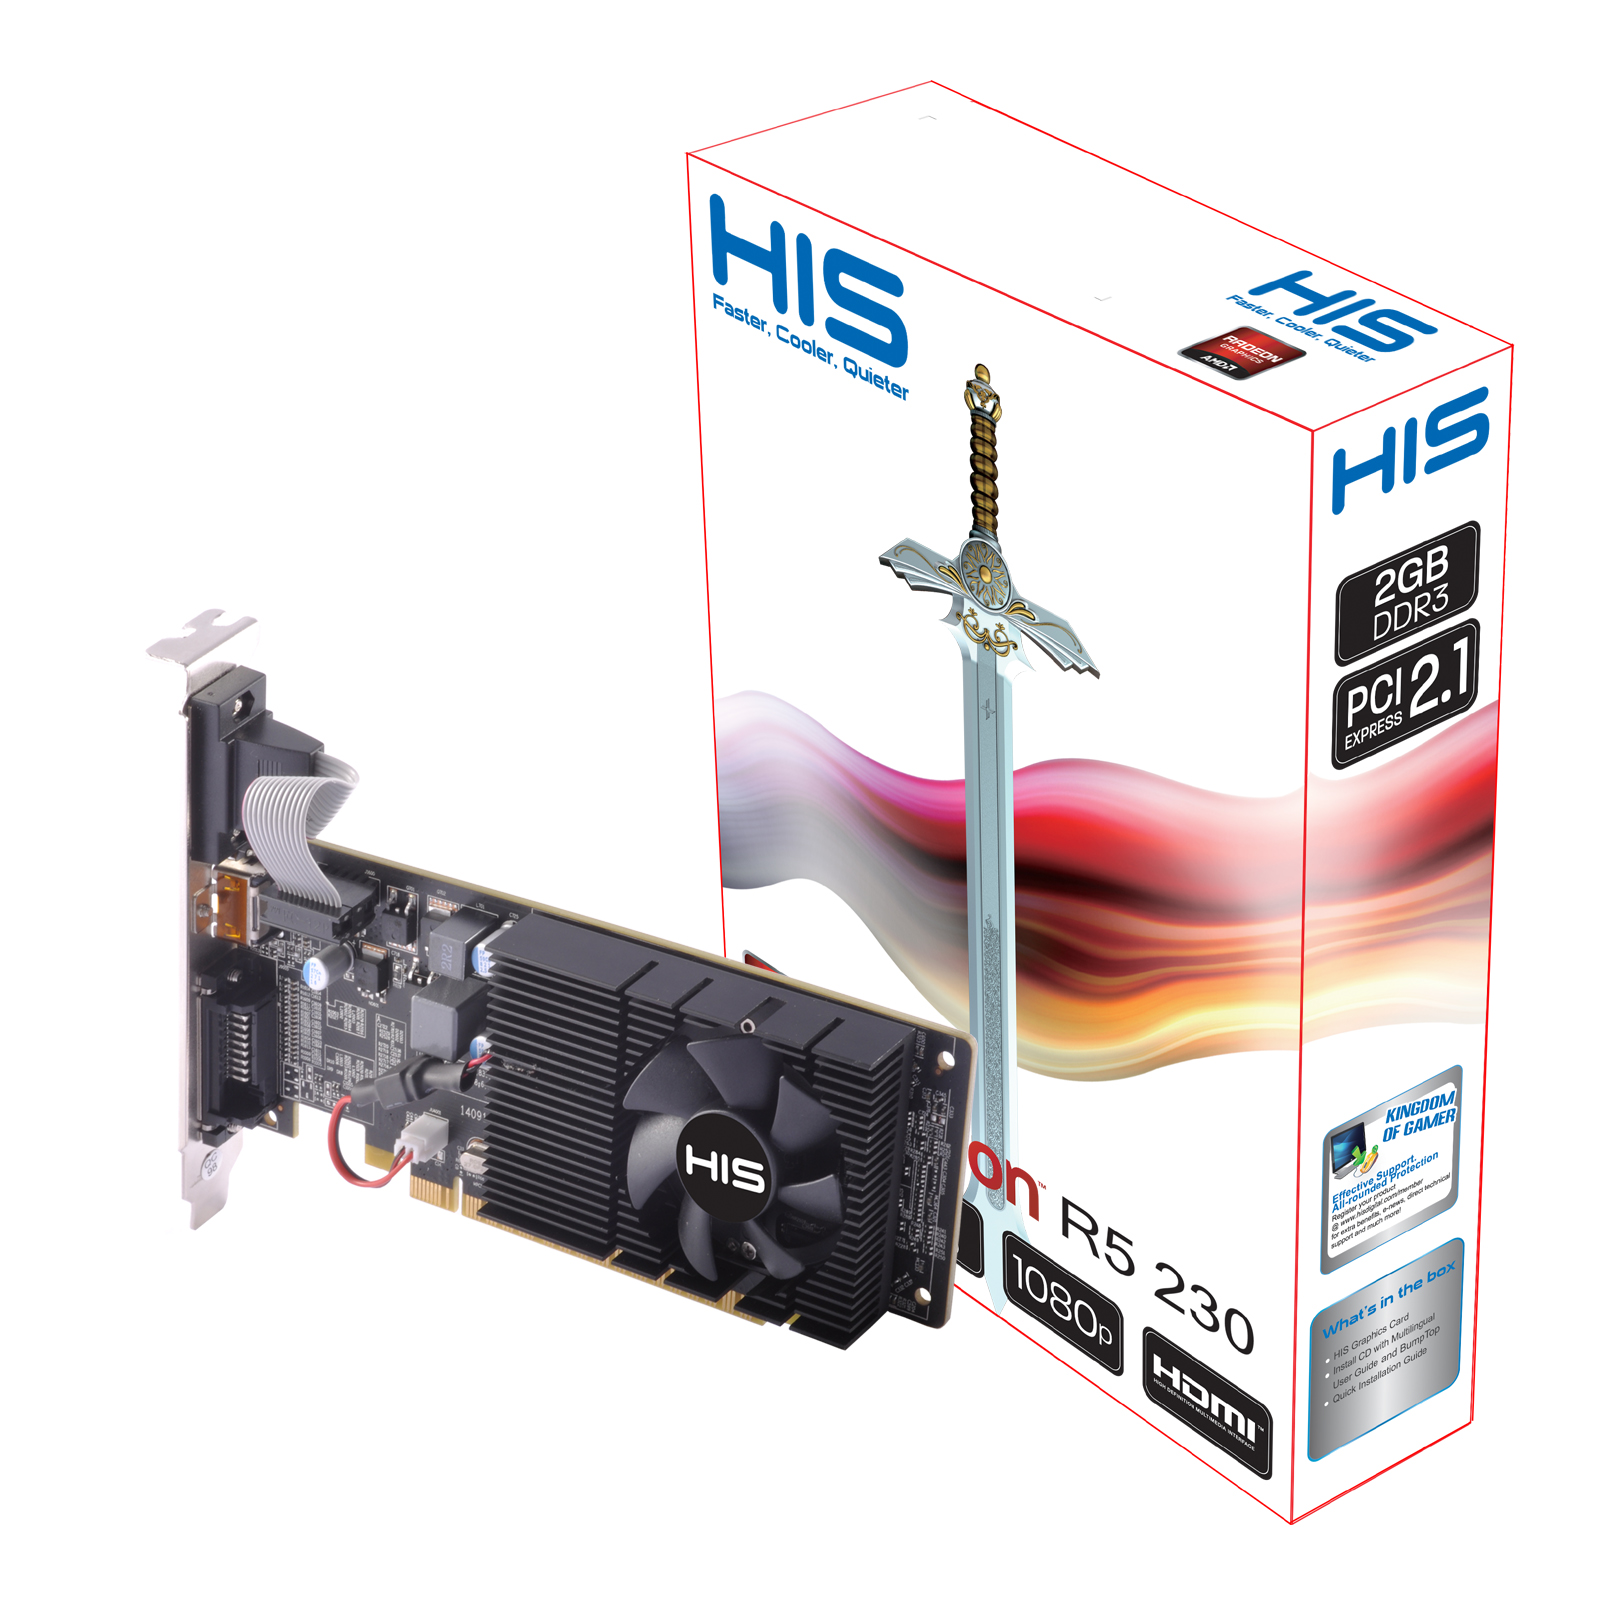 HIS R5 230 Fan 2GB DDR3 PCI-E DVI/HDMI/VGA < R5 230 Series